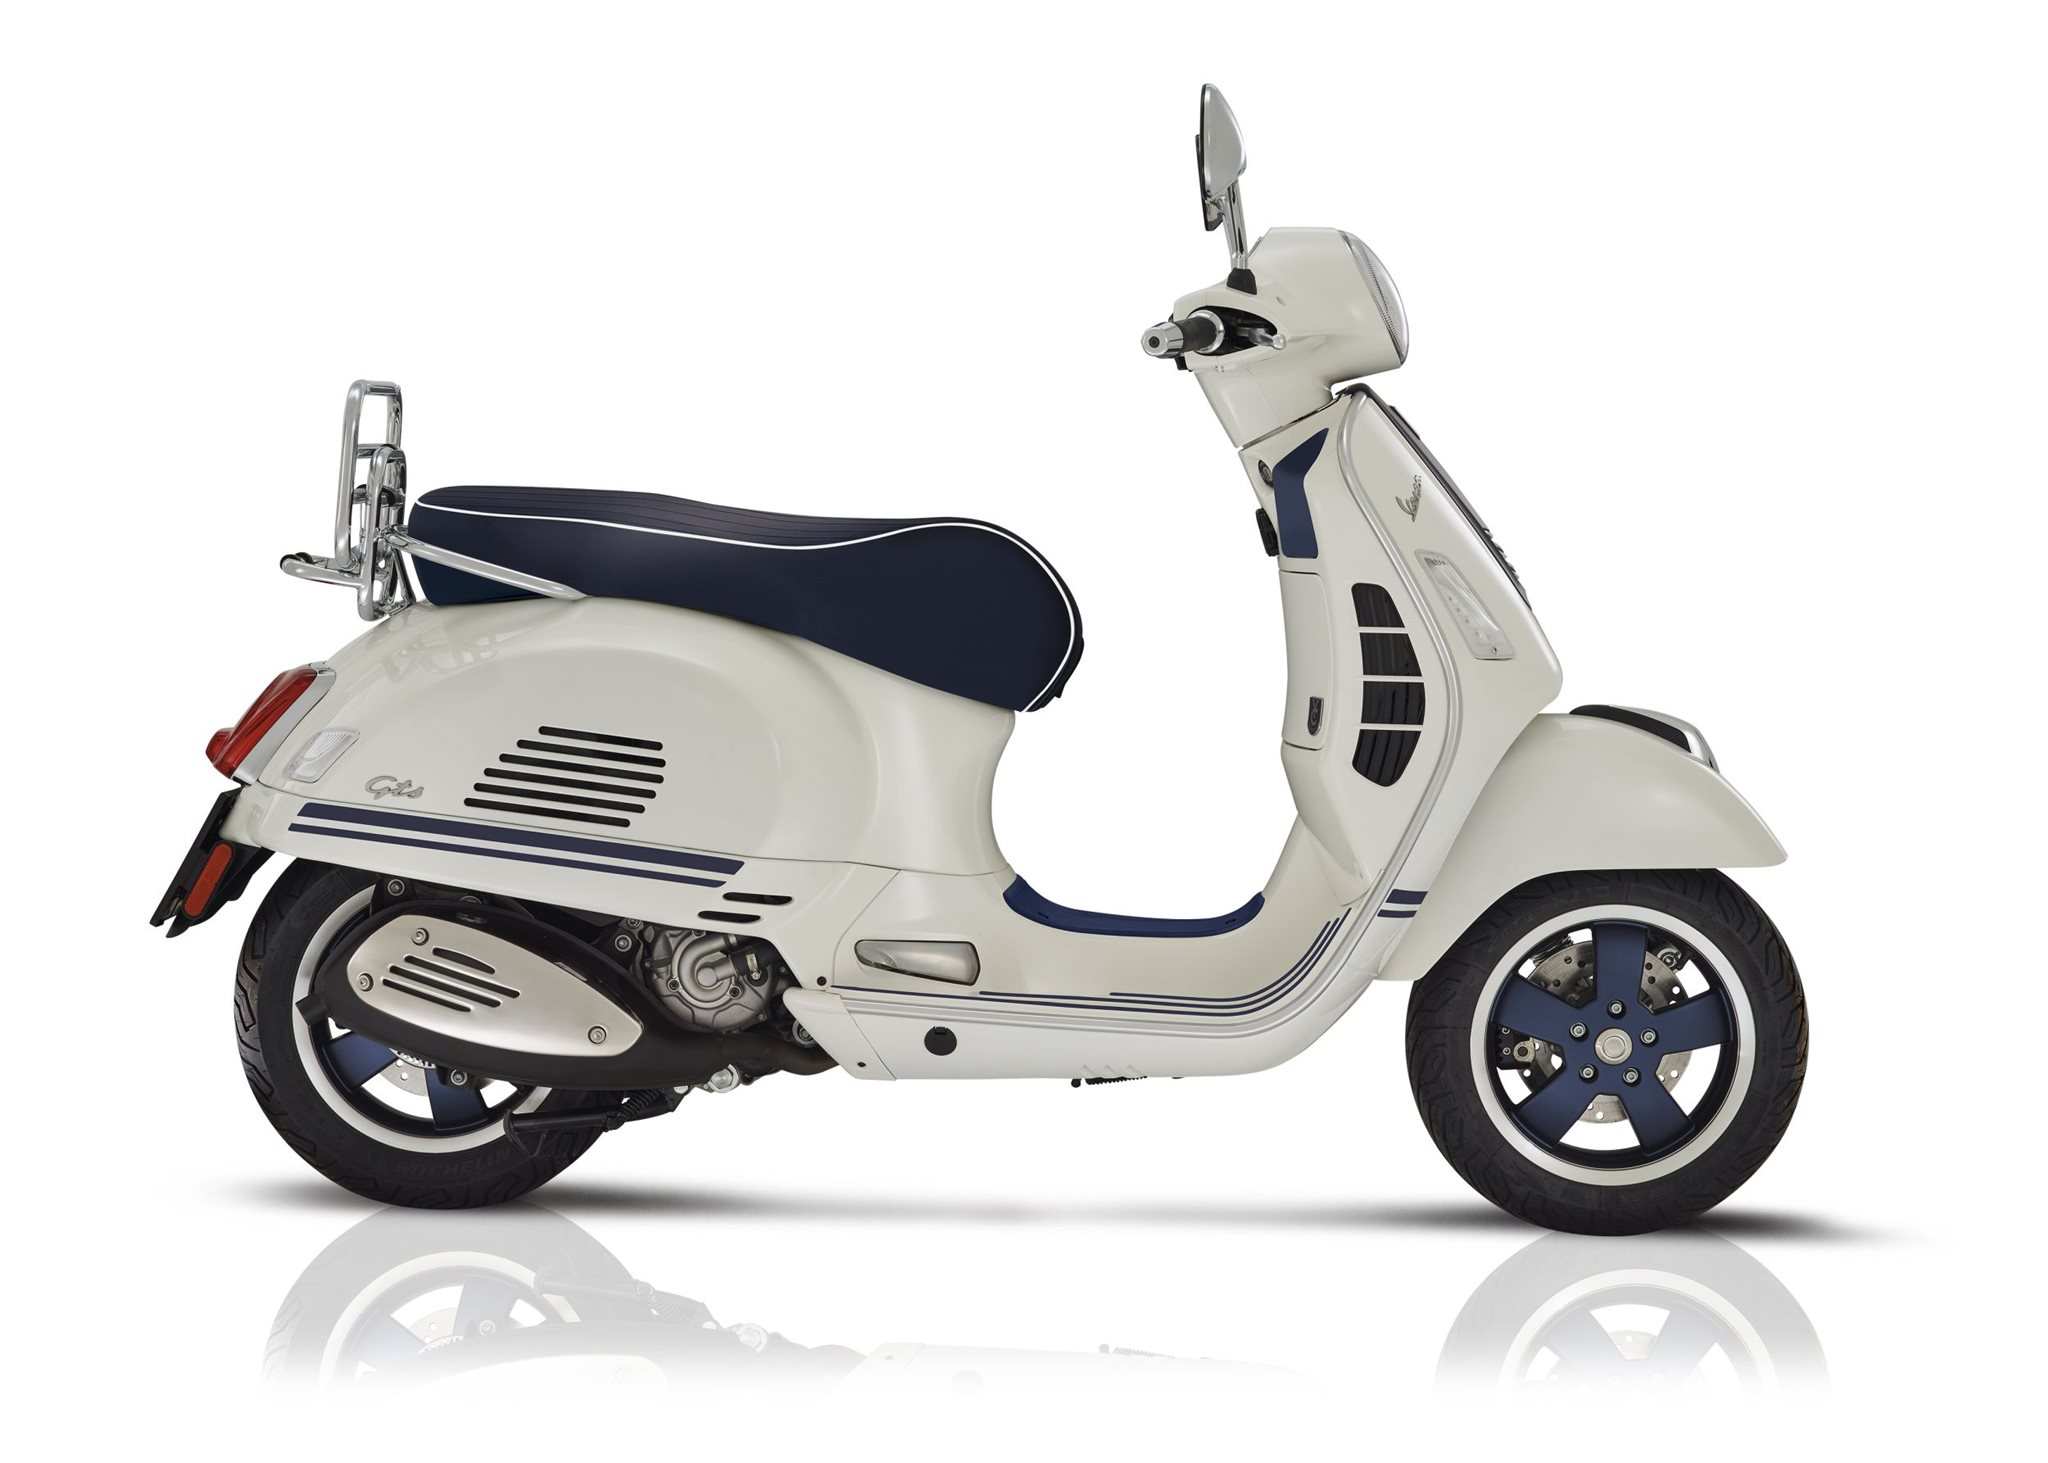 Vespa GTS 125ie Super Tech